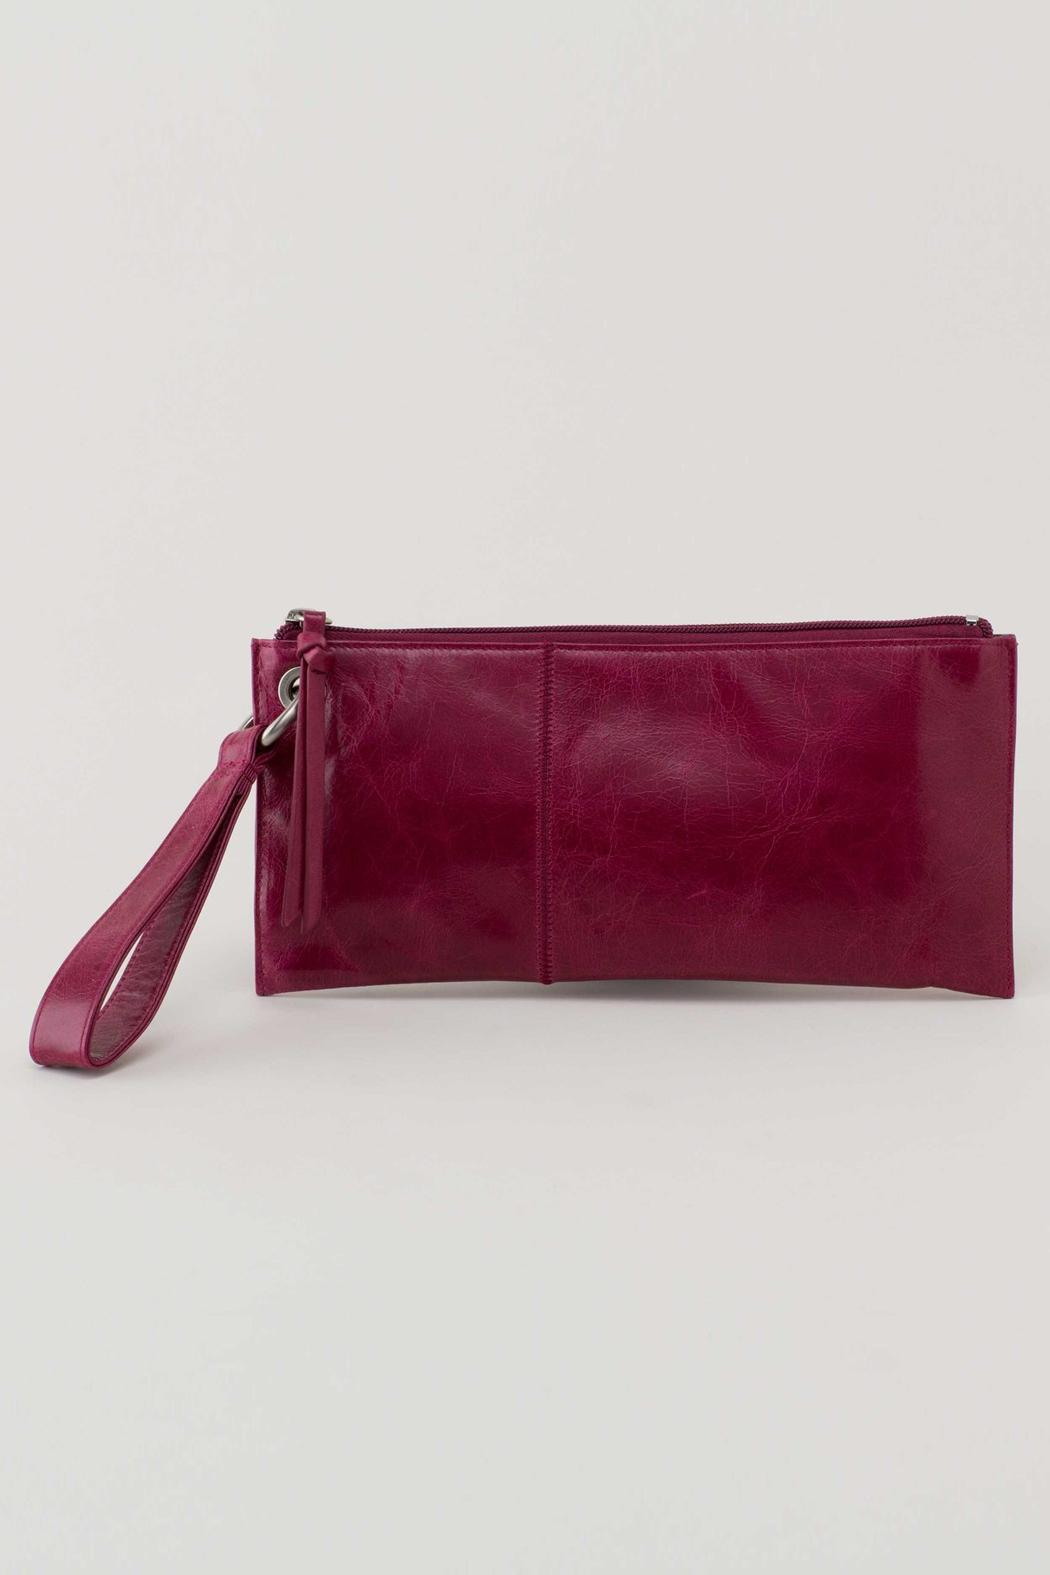 VIDA Leather Statement Clutch - Be by VIDA LOQtV